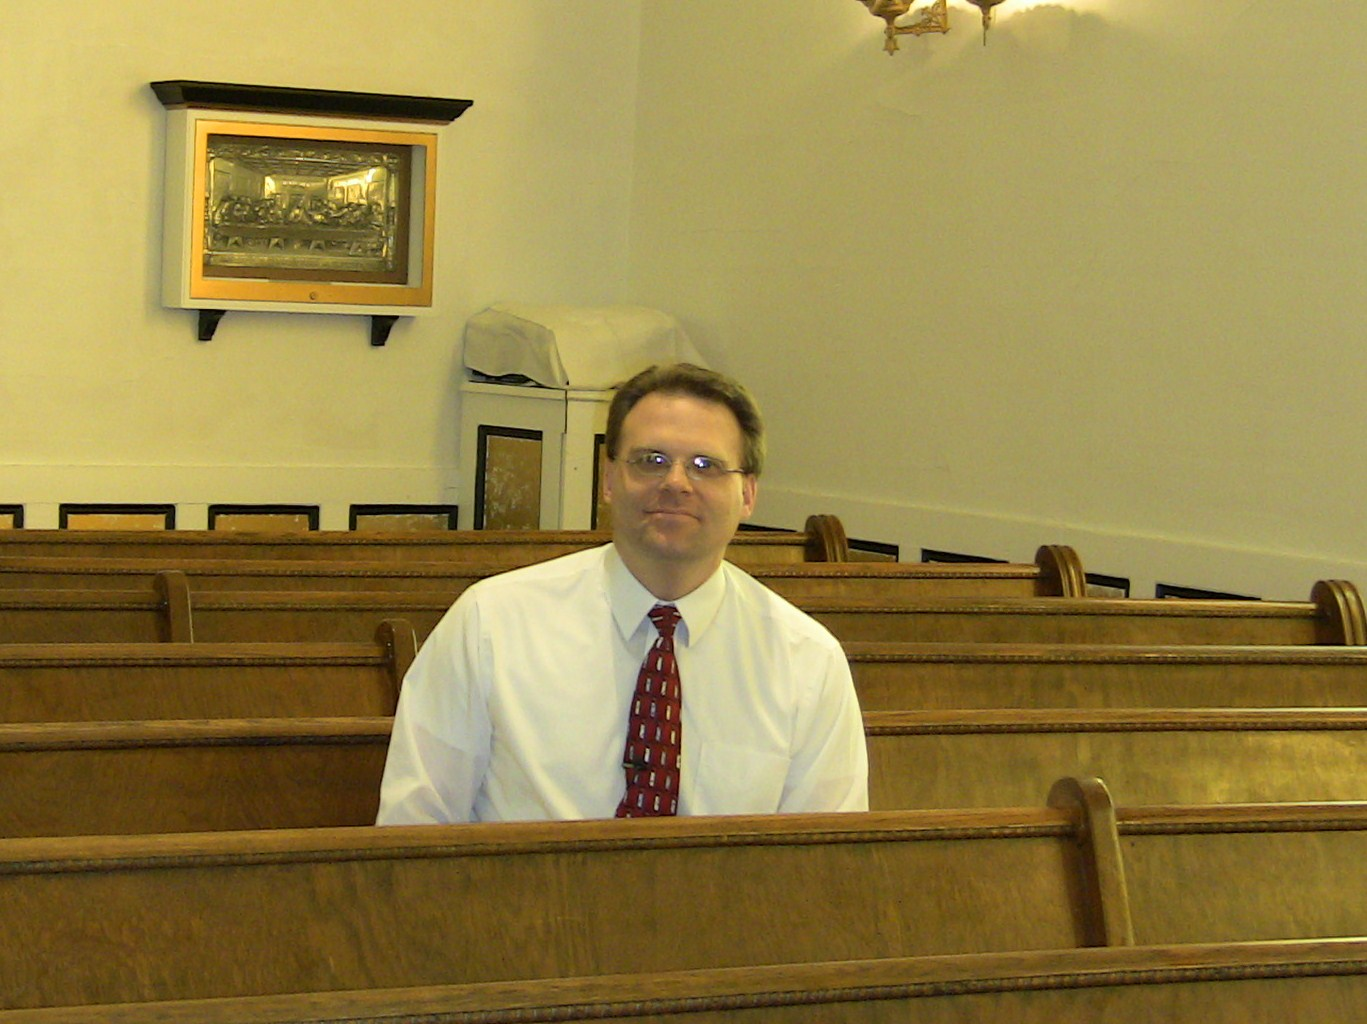 Man pastor wiley at first baptist church of jefferson maine